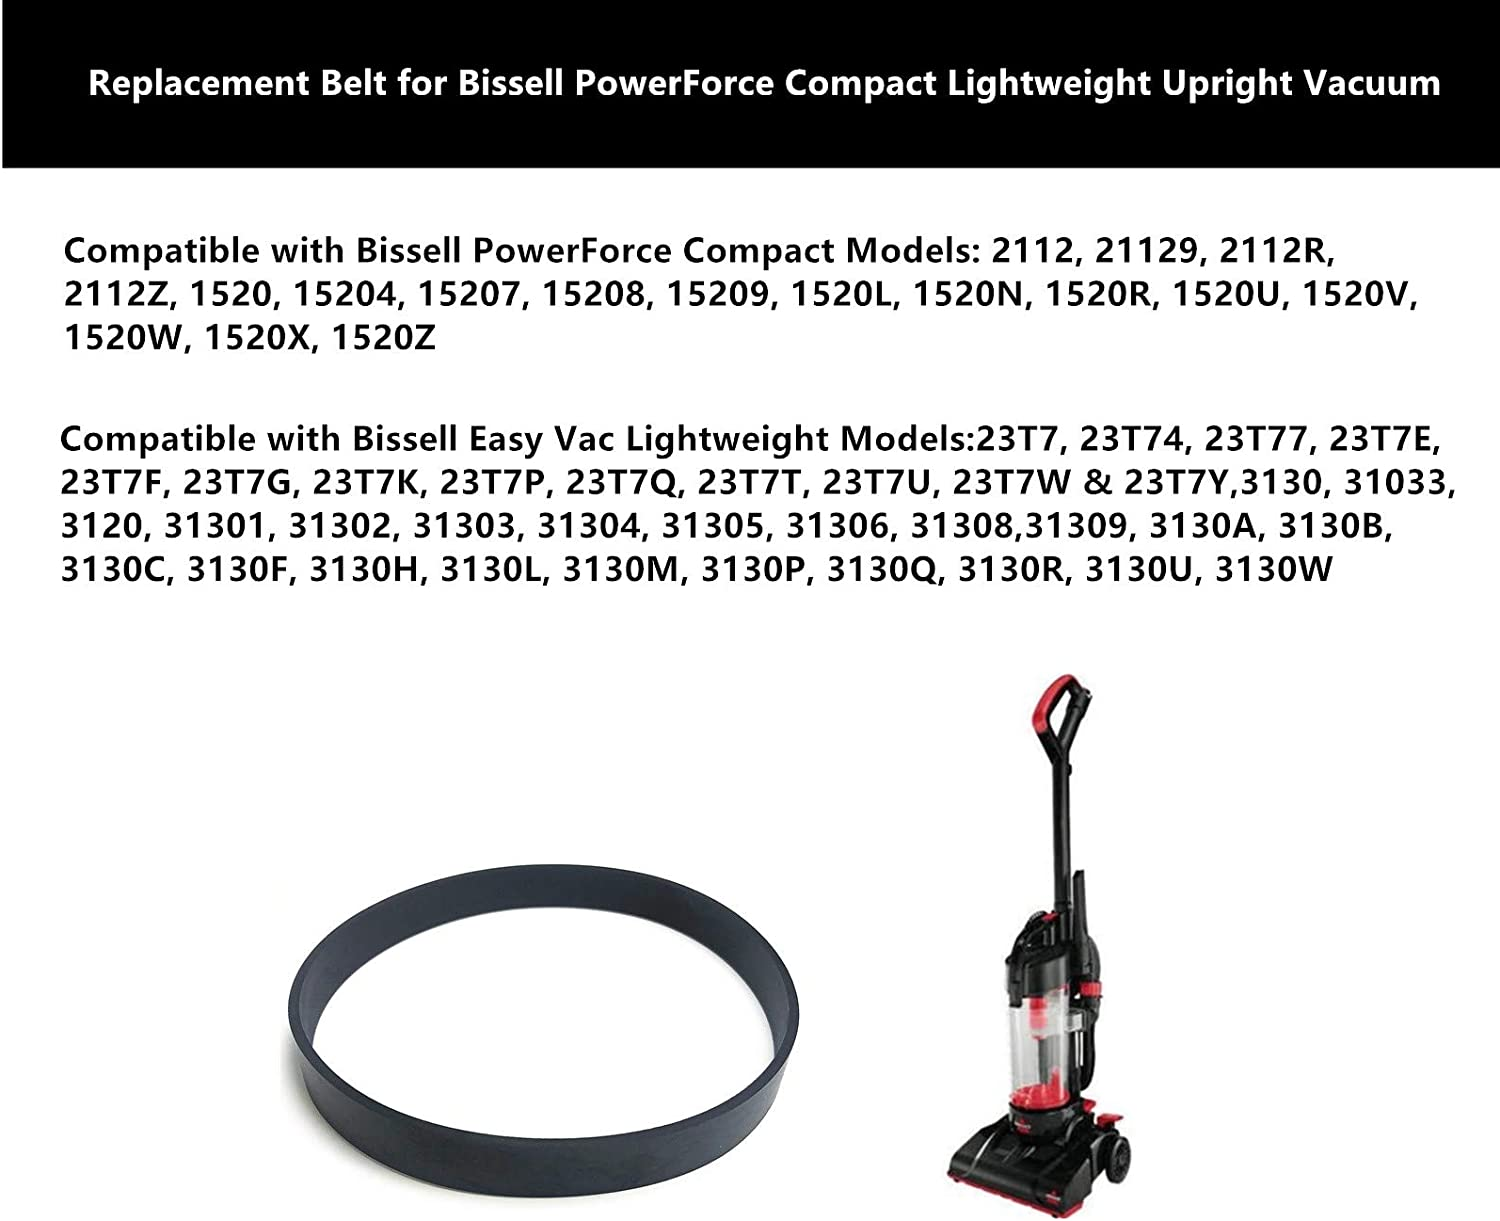 Replacement Belt for Bissell PowerForce Compact Lightweight Upright Vacuum,Compatible with Models 1520,2112,23T7,3130,Part 1604895,2037034 2 Belt